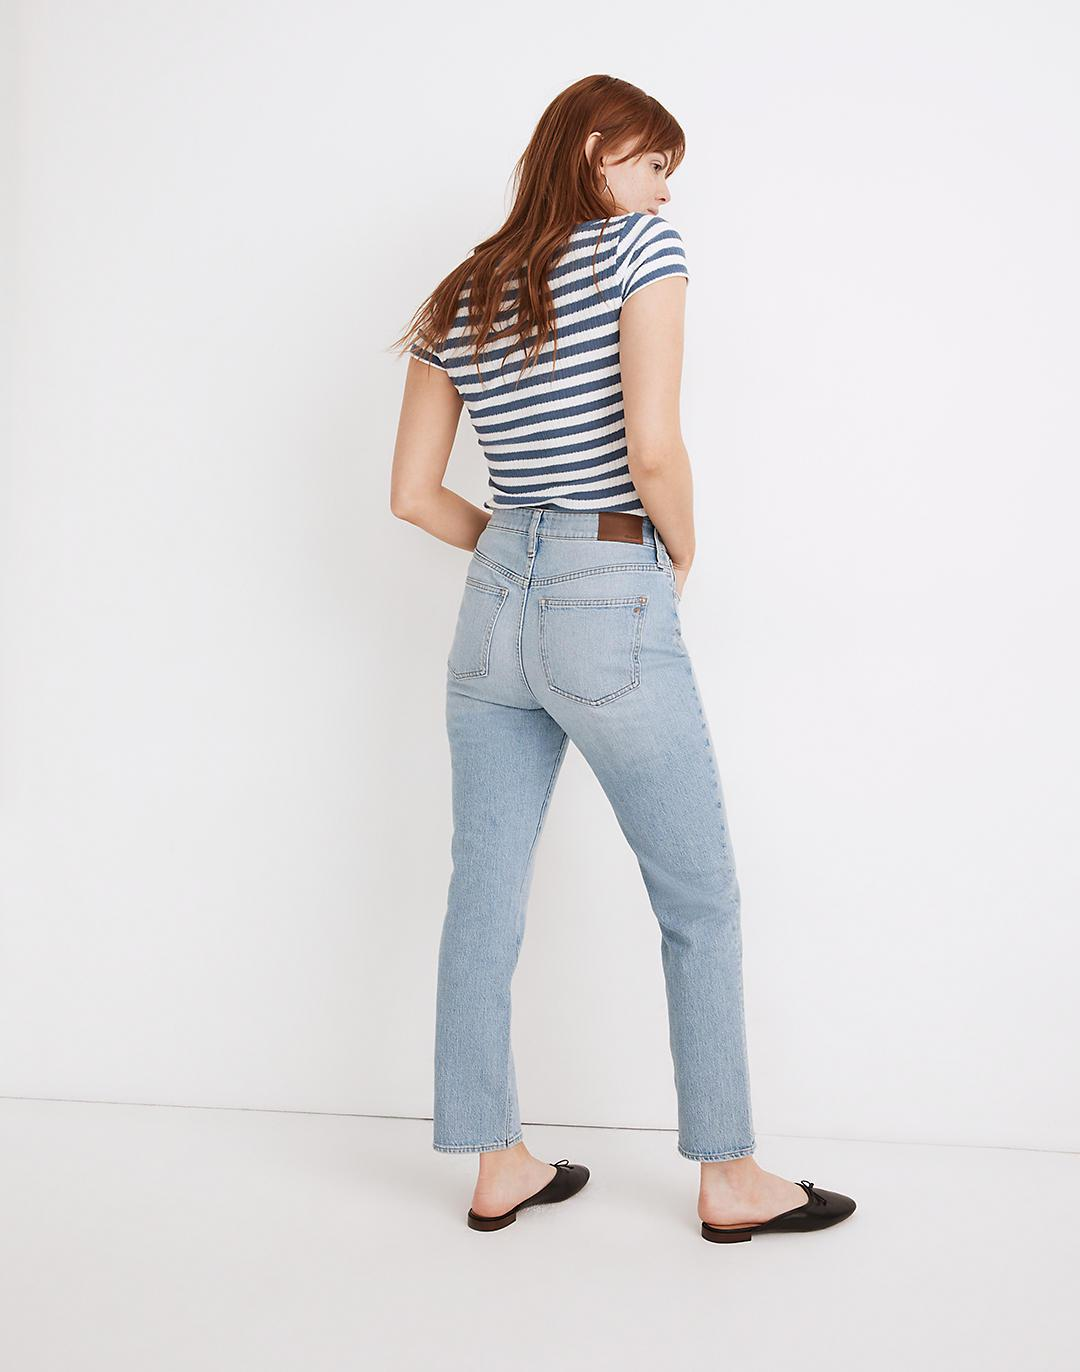 The Curvy Perfect Vintage Jean in Fiore Wash 2